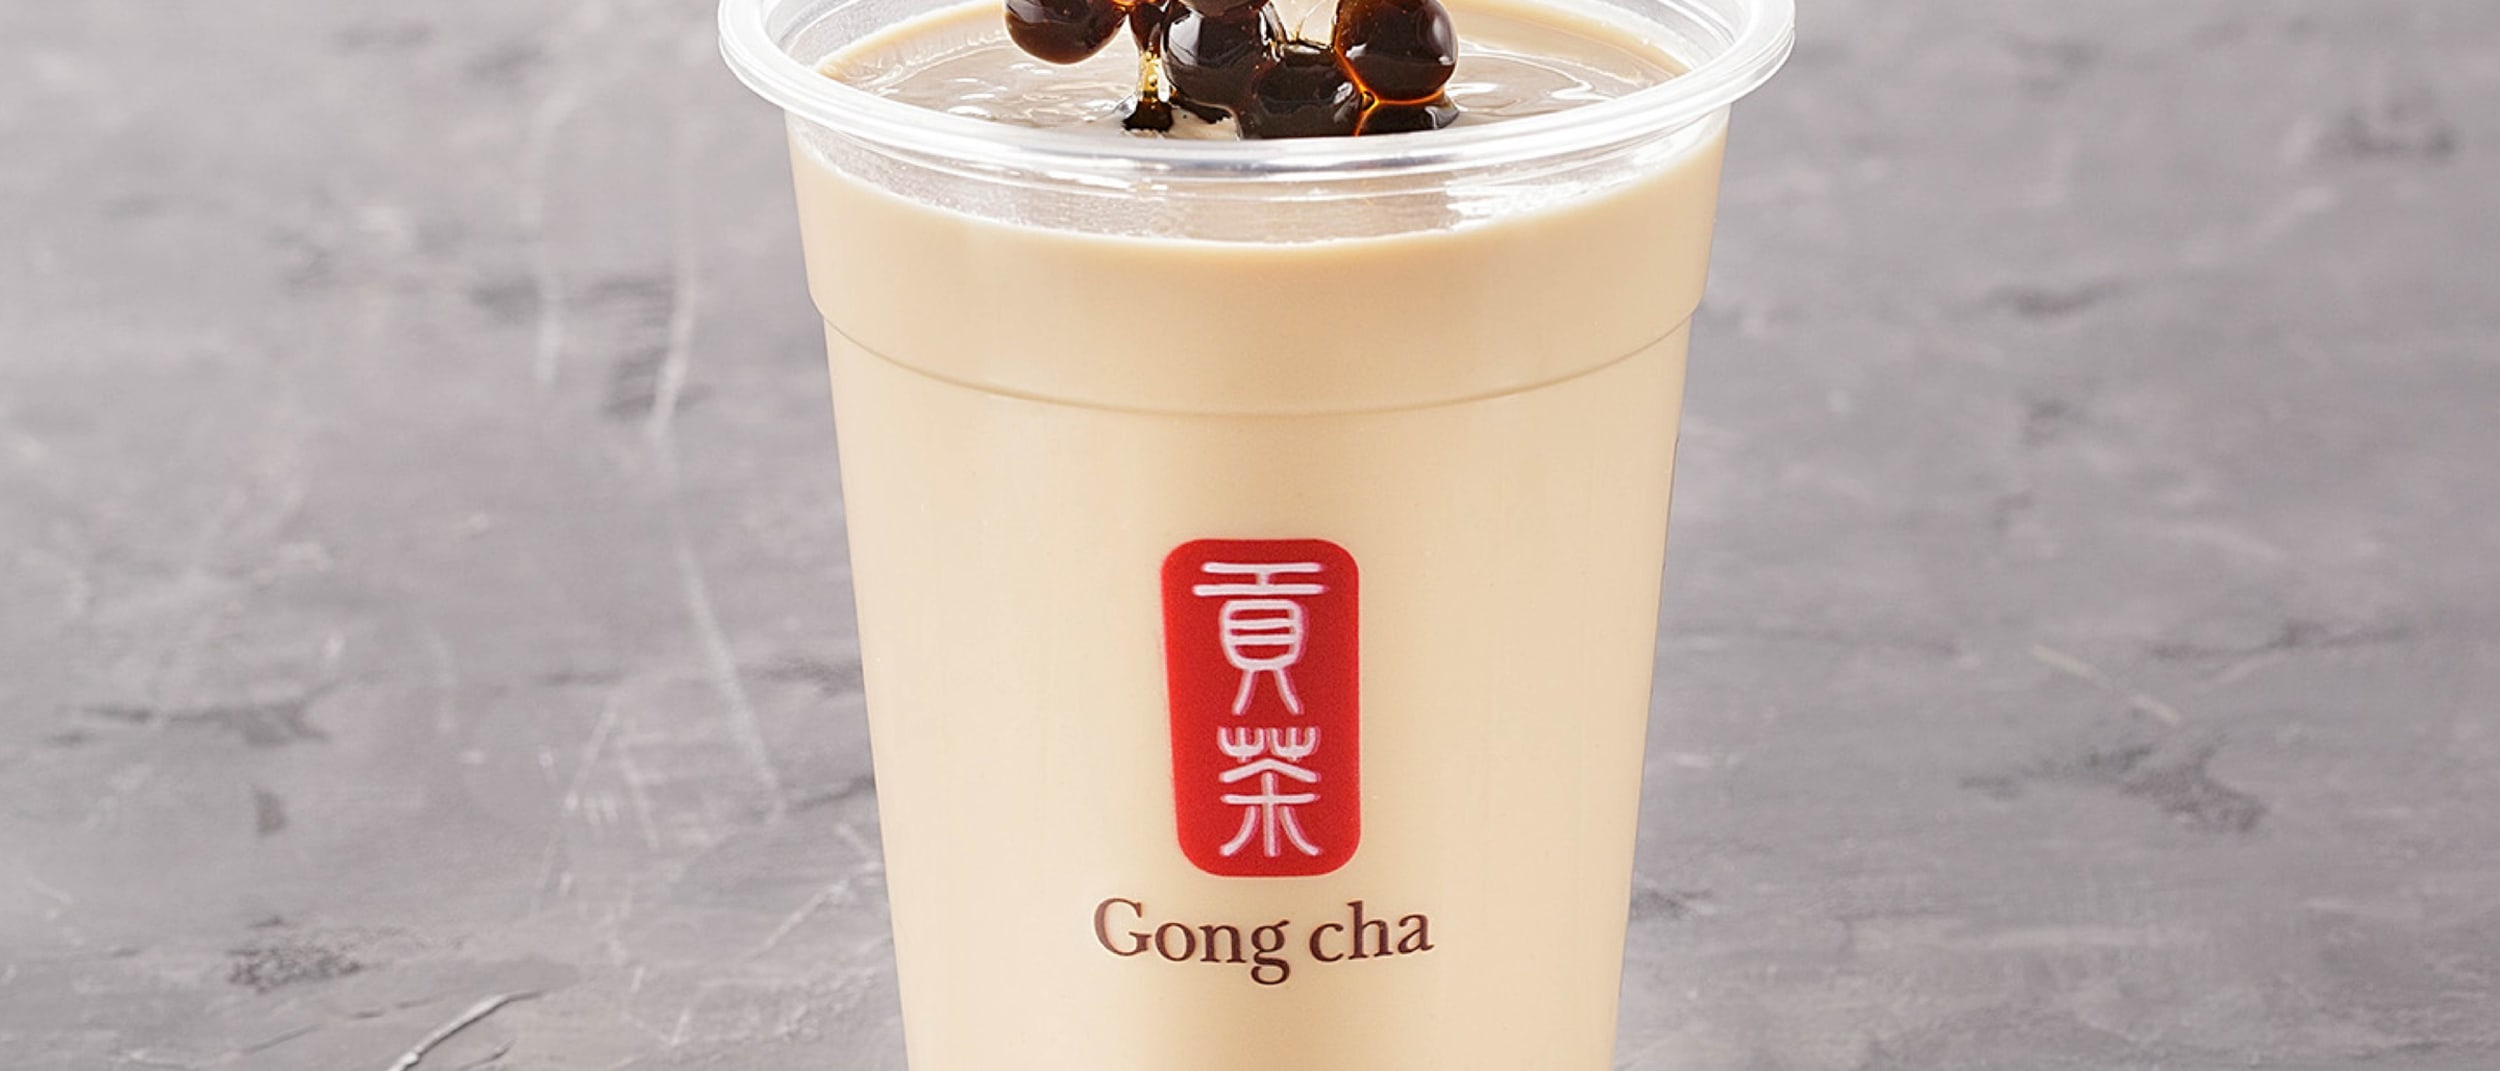 Gong Cha has arrived at Westfield St Lukes